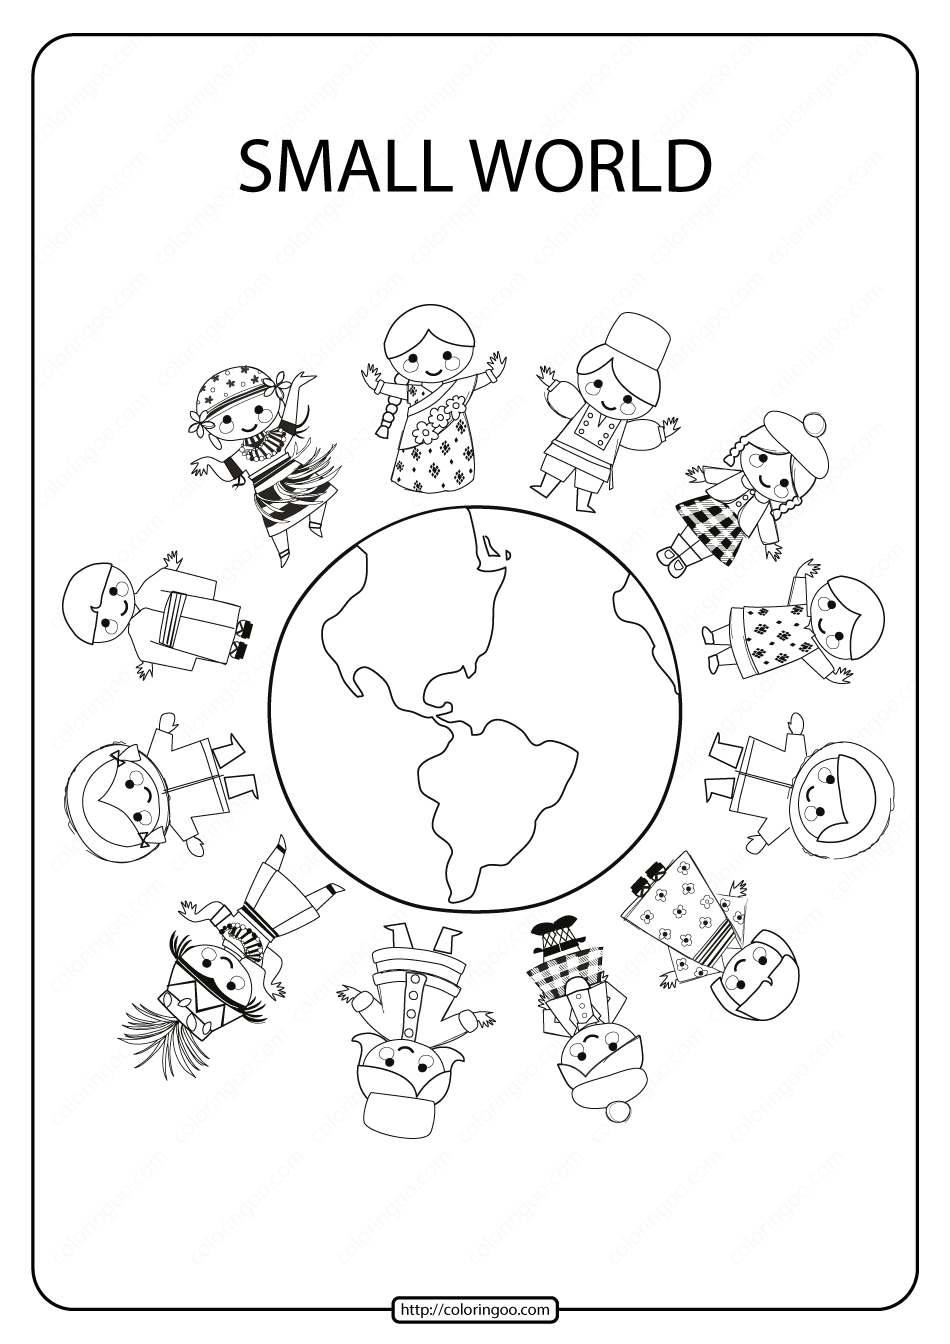 Printable Small World Pdf Coloring Page Coloring Pages Earth Coloring Pages Coloring Pages For Kids